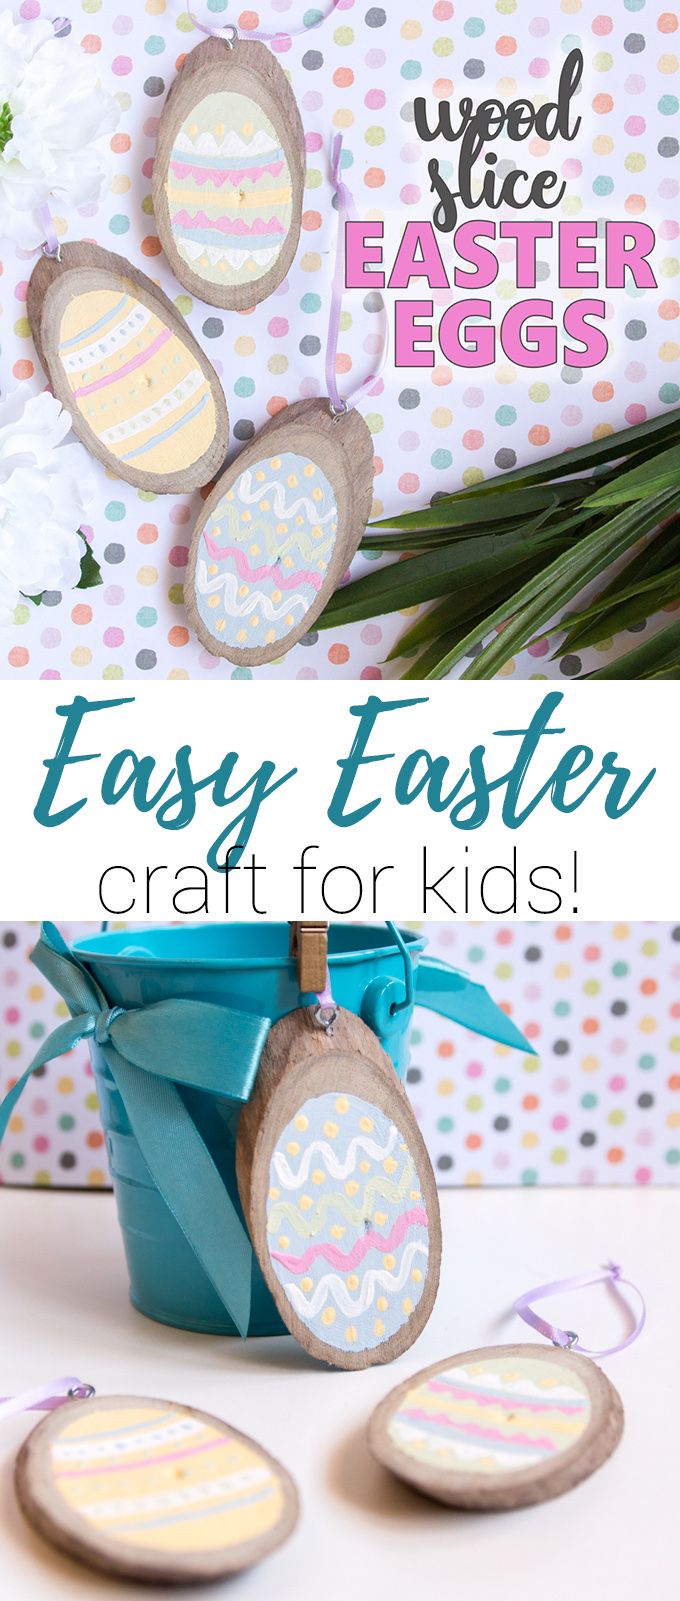 These Wooden Easter Egg Ornaments are just too cute to pass up. Not only are they simple, but they are so much fun to make as well!